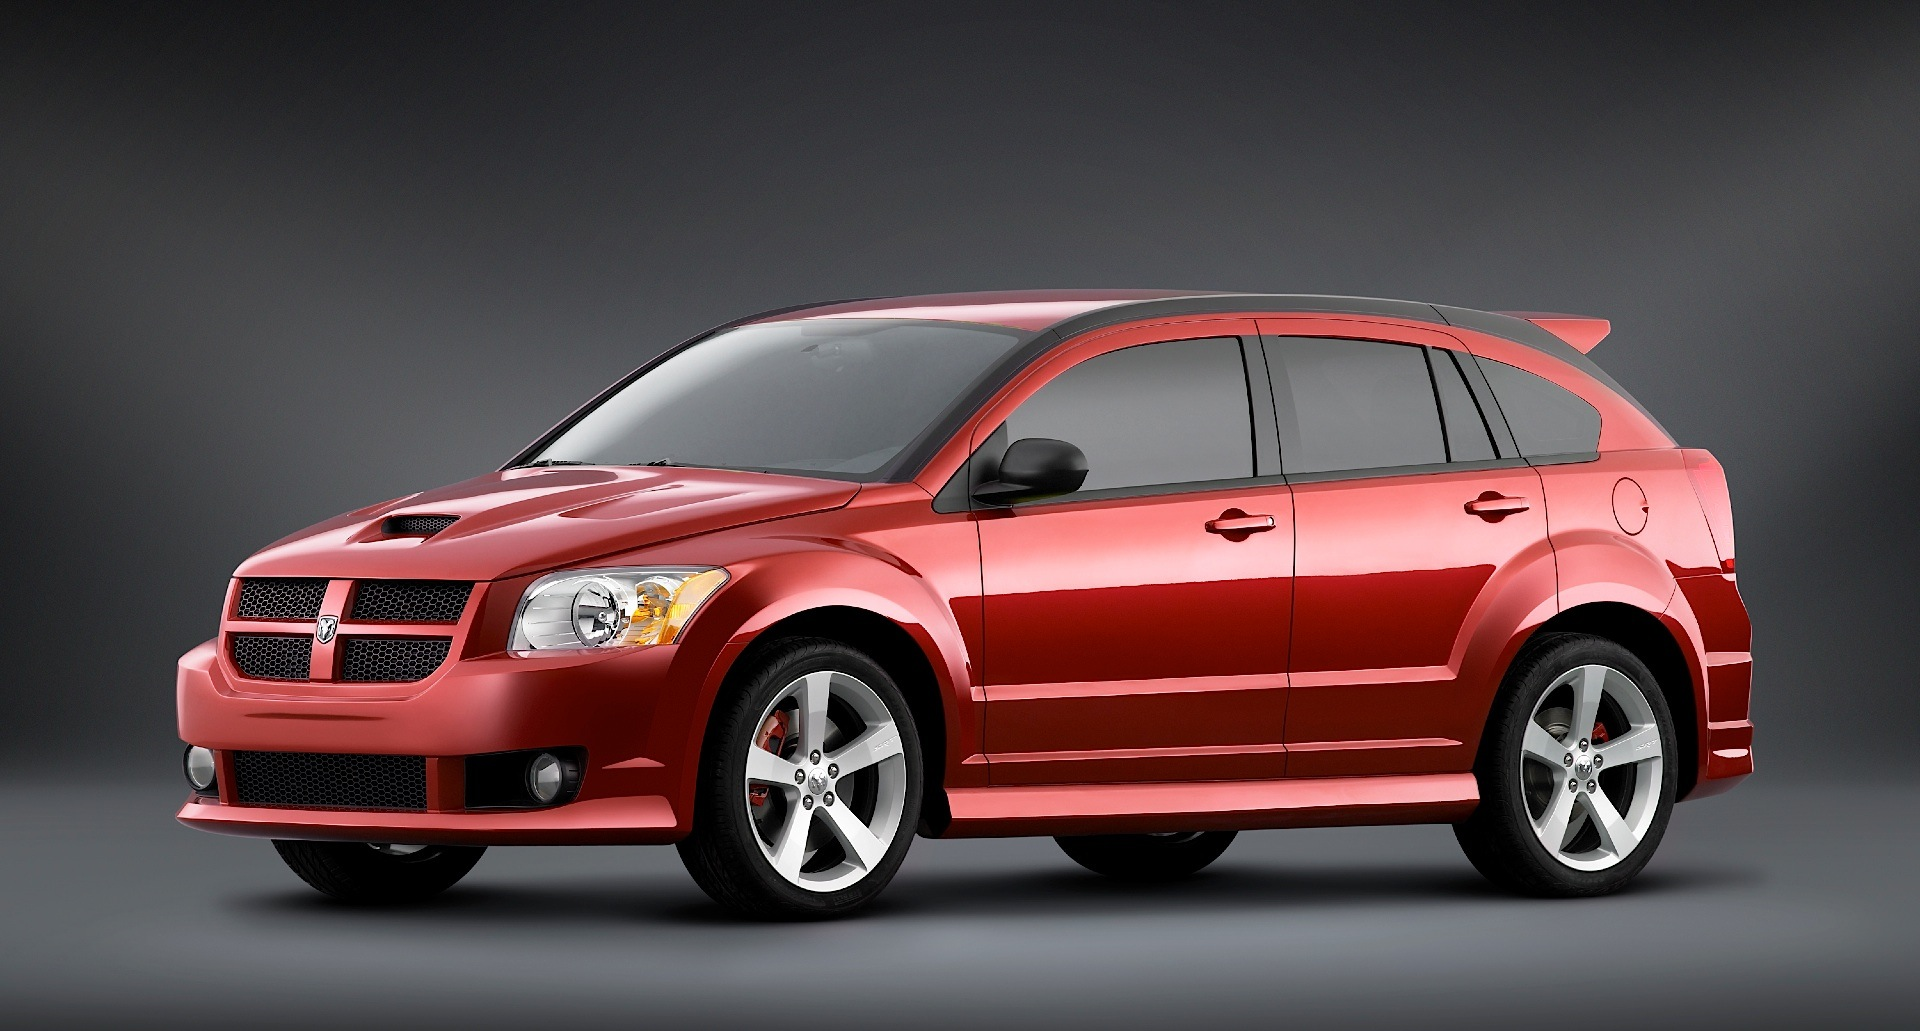 DODGE Caliber SRT4 - 2007, 2008, 2009, 2010, 2011 - autoevolution